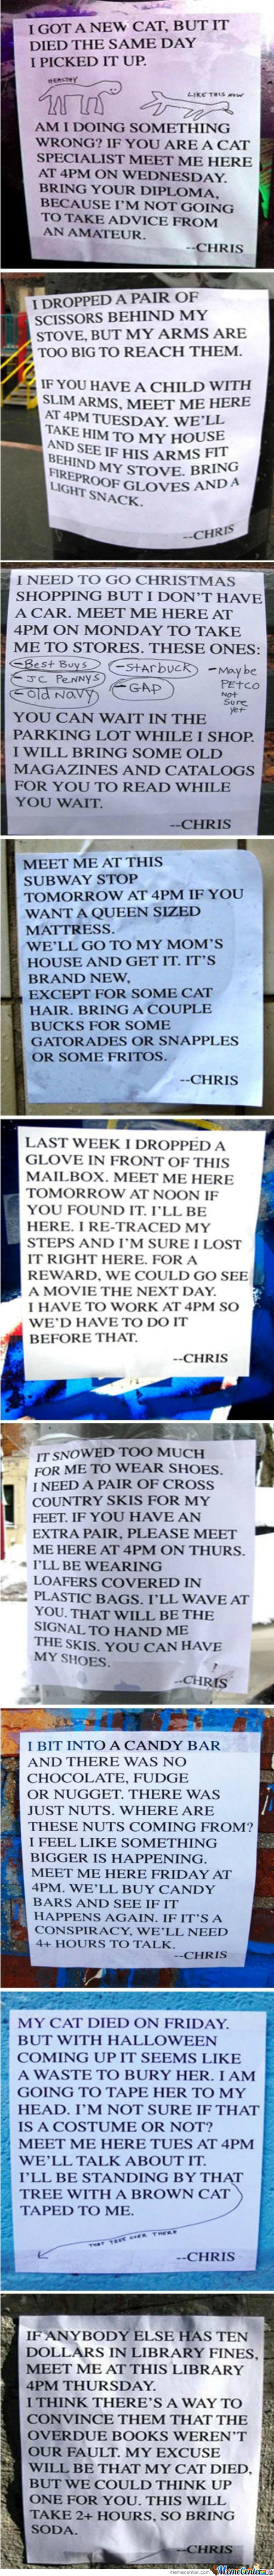 Too Much Free Time+ Sense Of Humor = That Chris Guy!